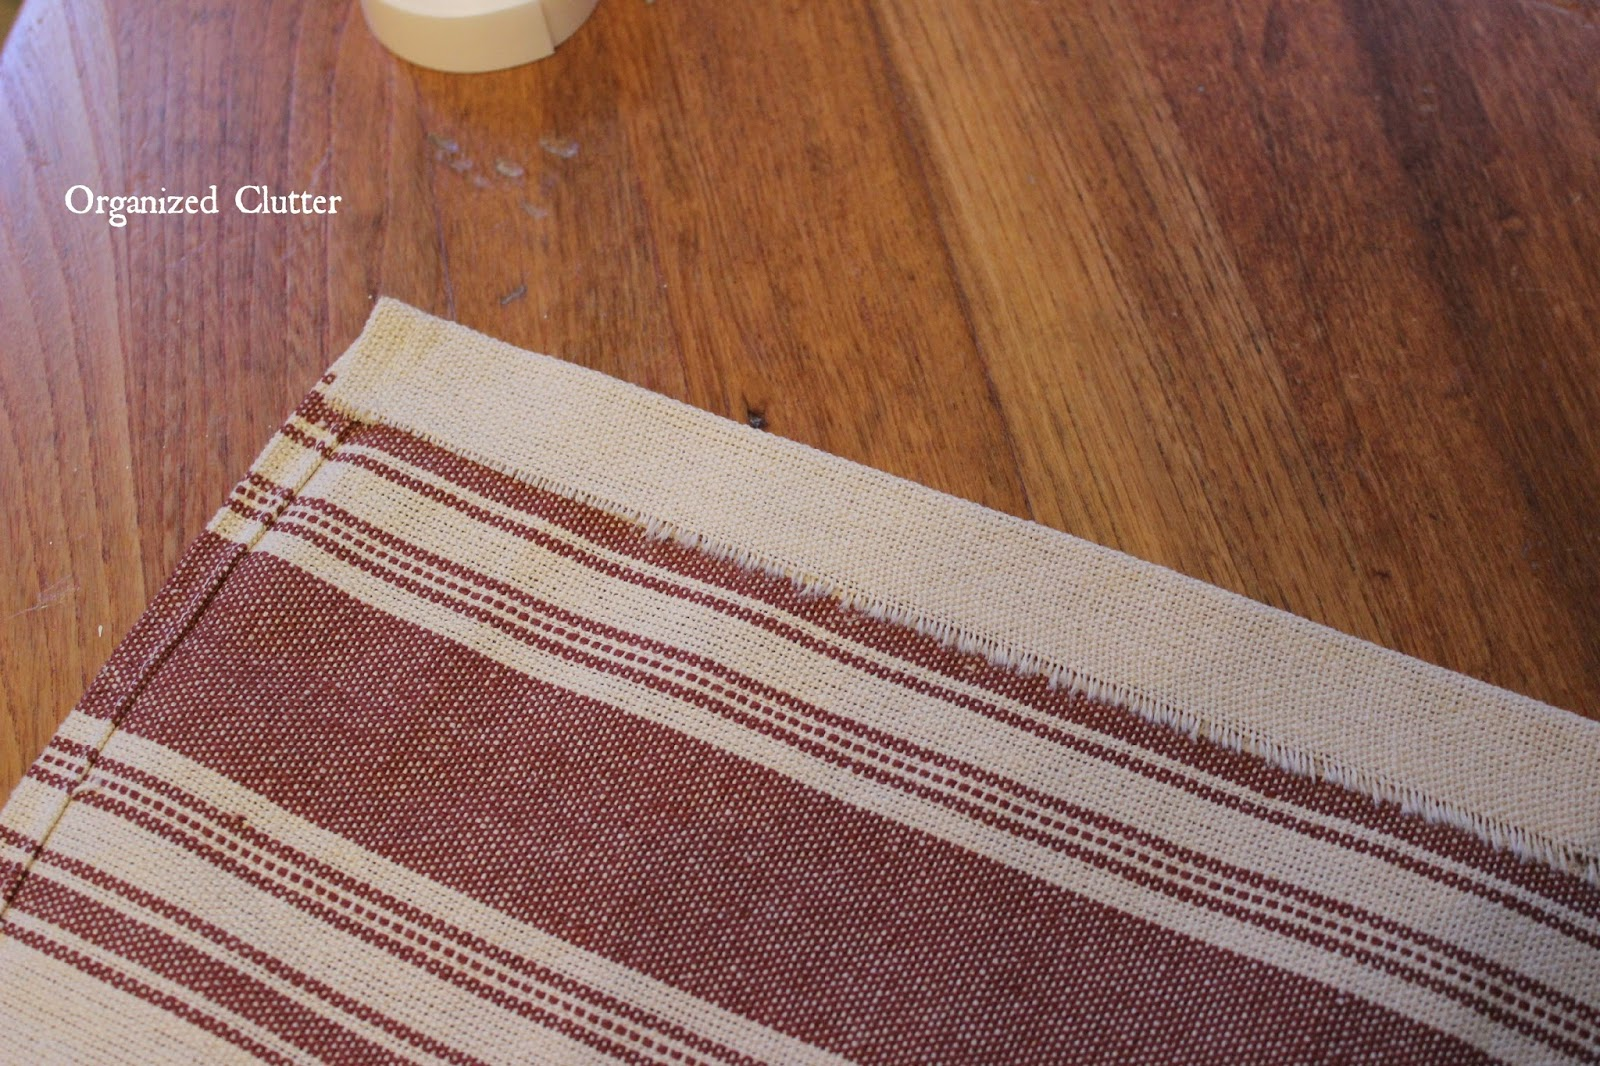 Easy No Sew Kitchen Valances www.organizedclutterqueen.blogspot.com